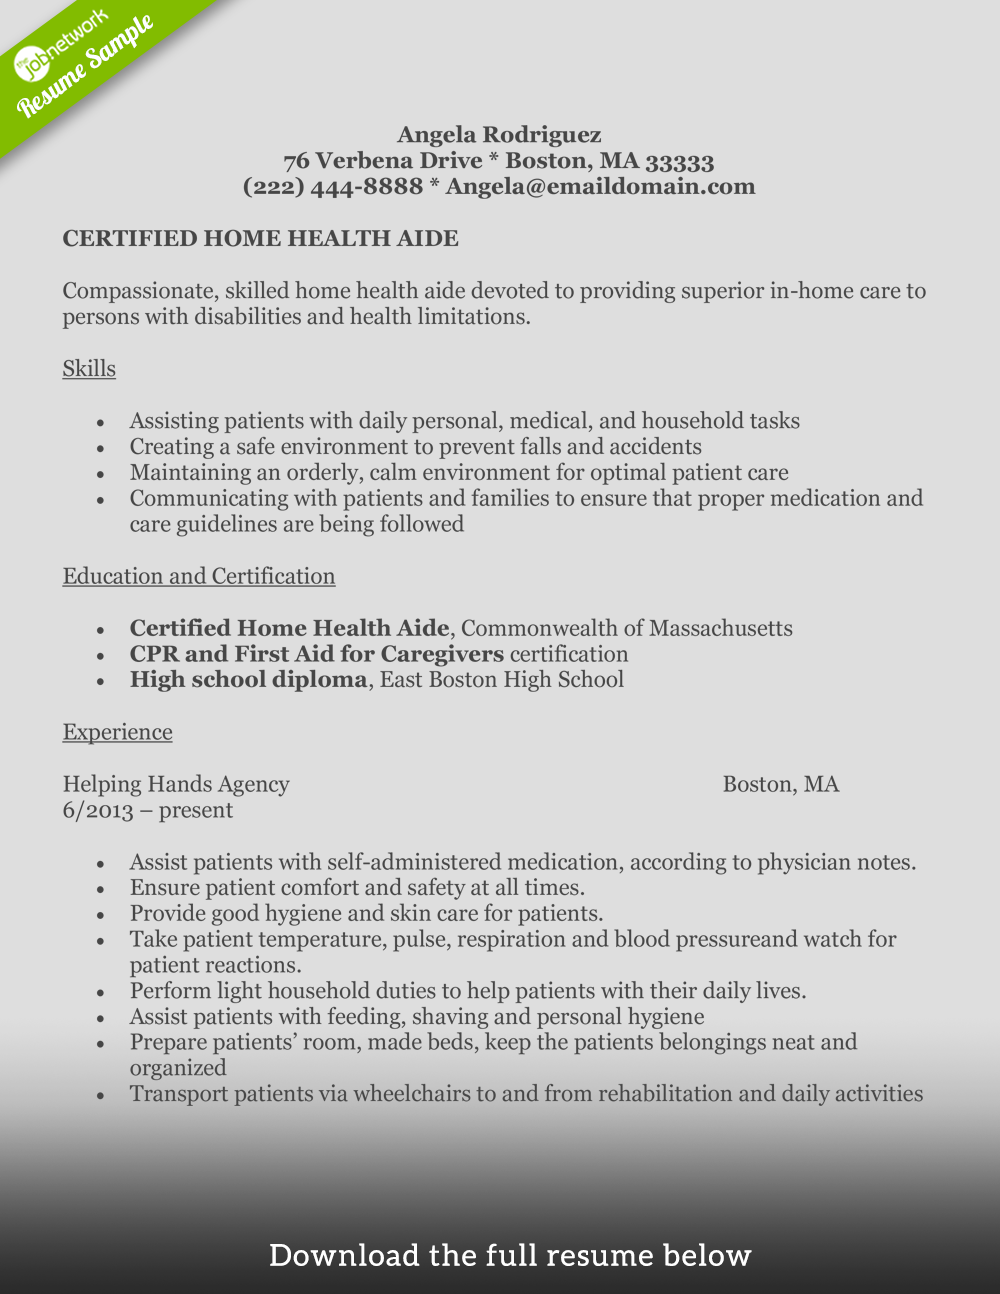 Resume Resume Examples For Health Care Aide how to write a perfect home health aide resume examples included certified